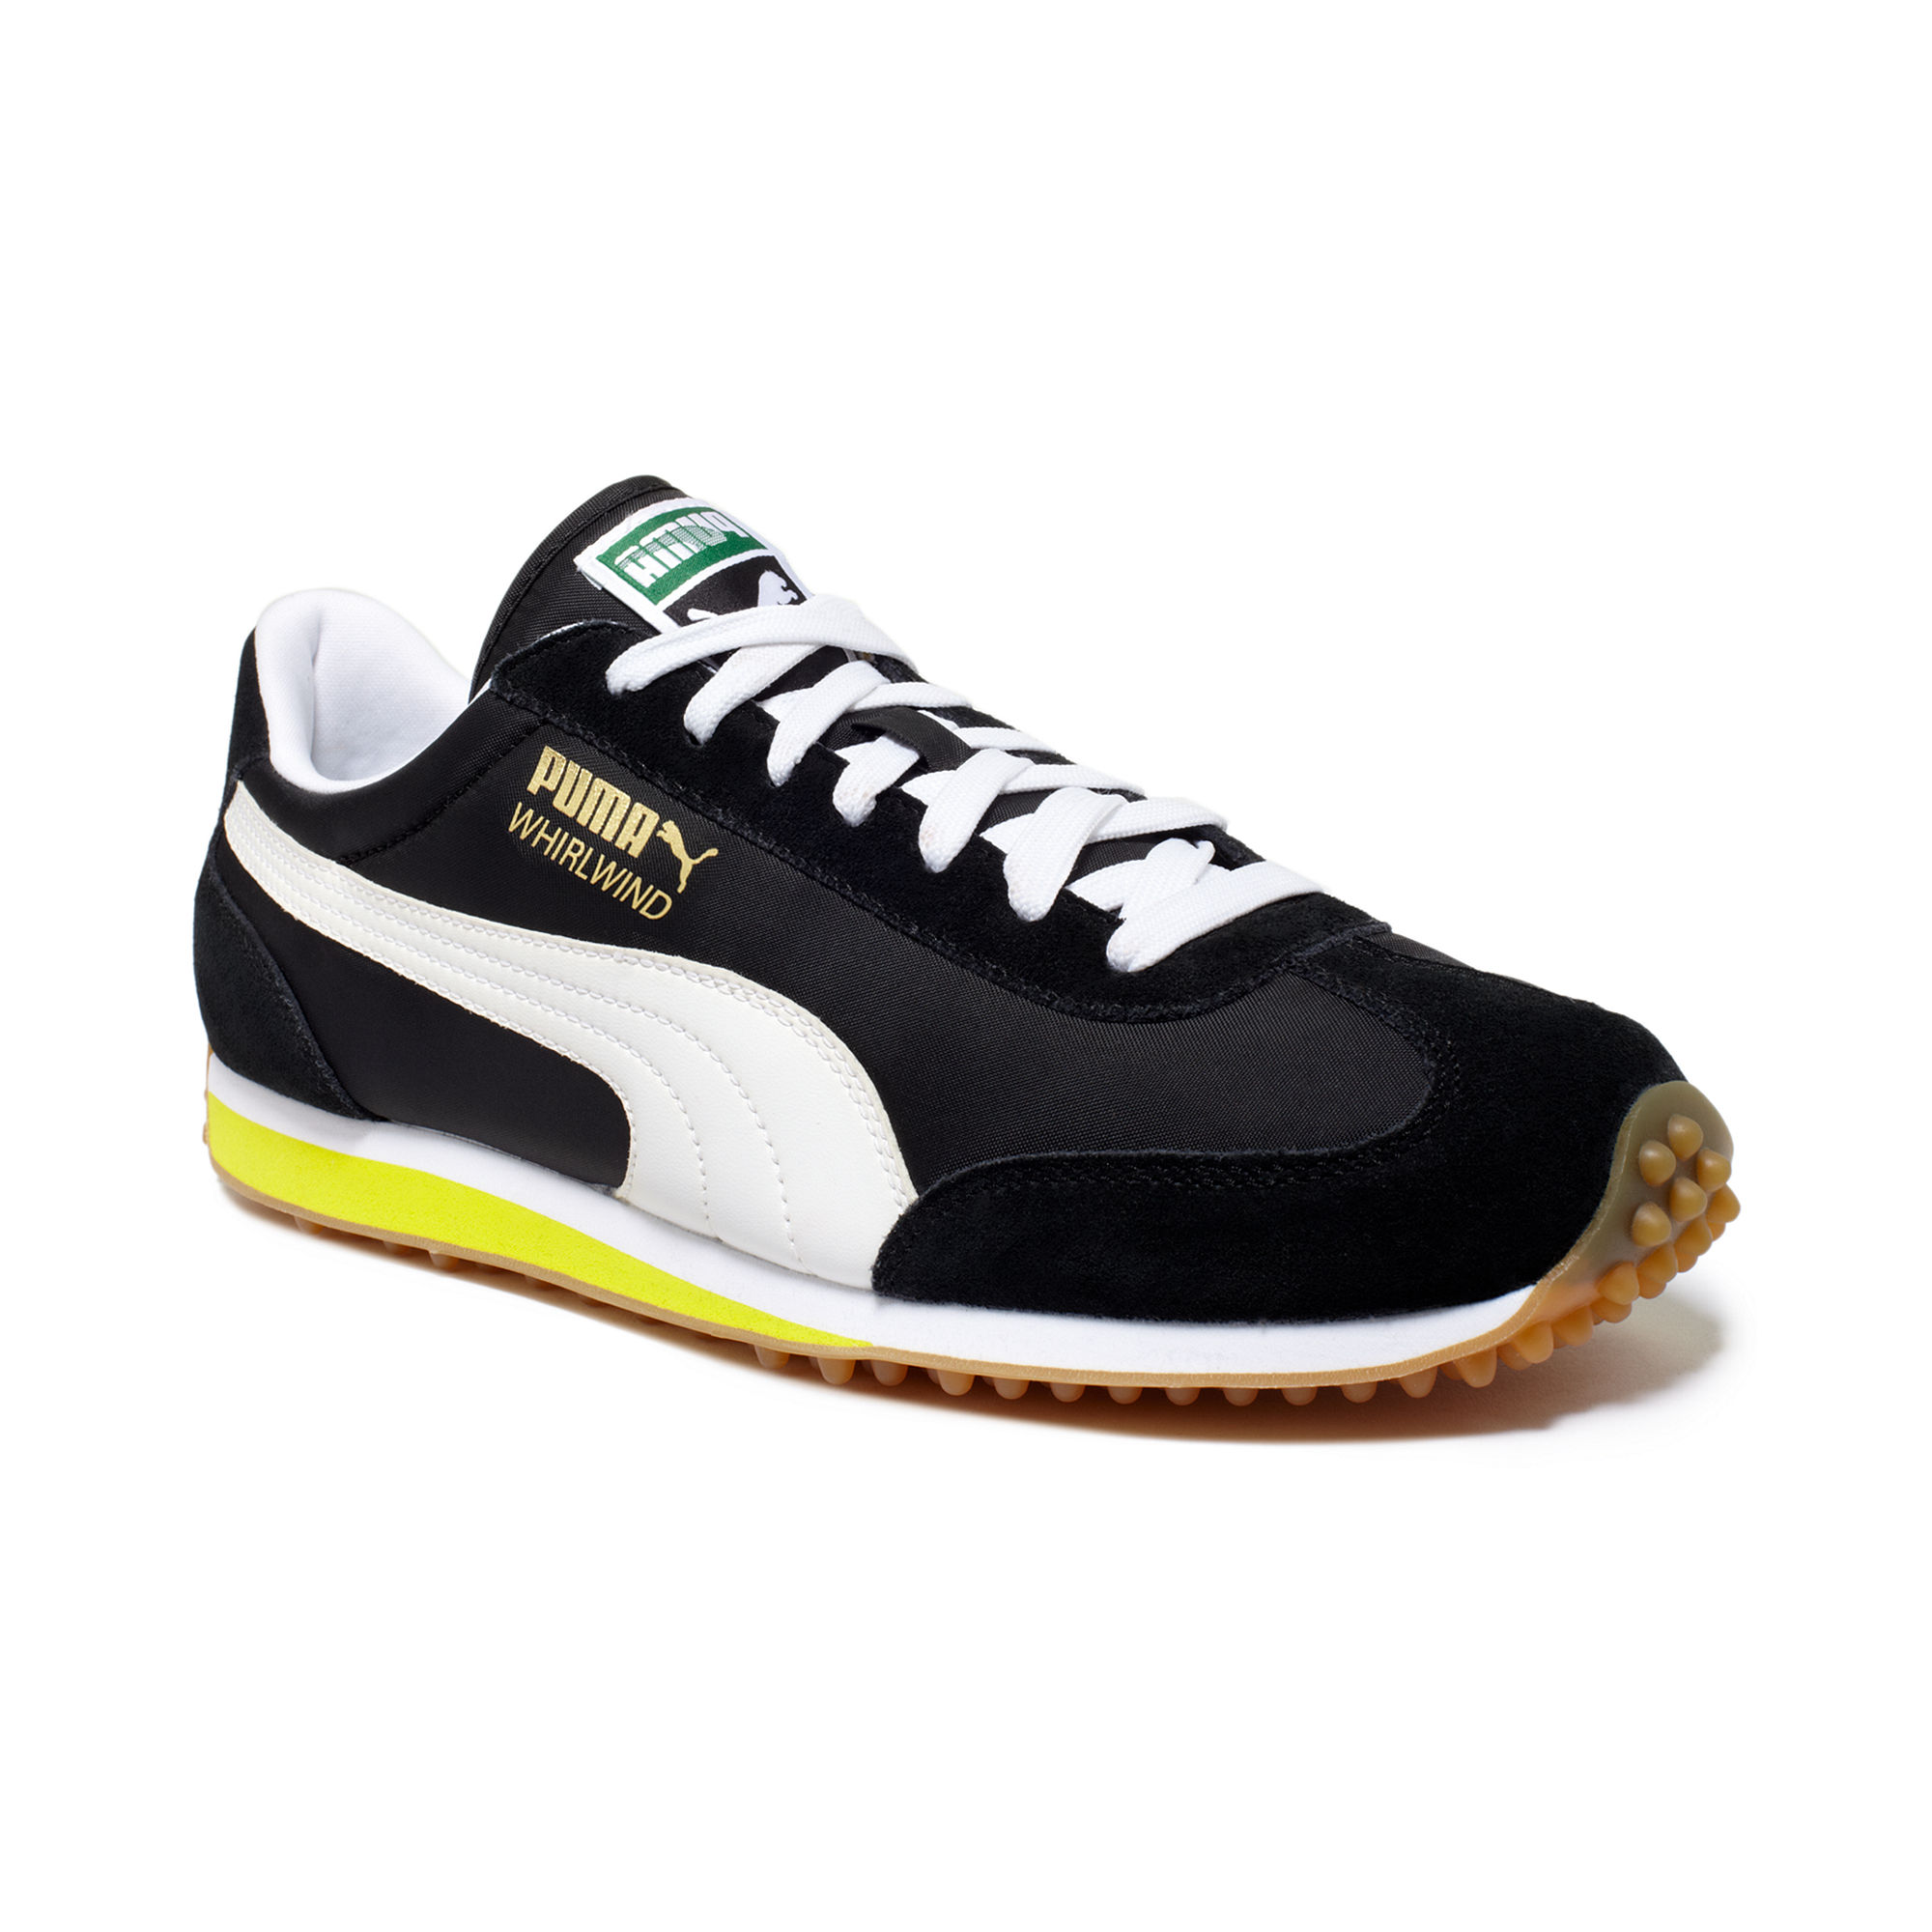 6117a0cf3c3485 Lyst - PUMA Whirlwind Classic Sneakers in Black for Men